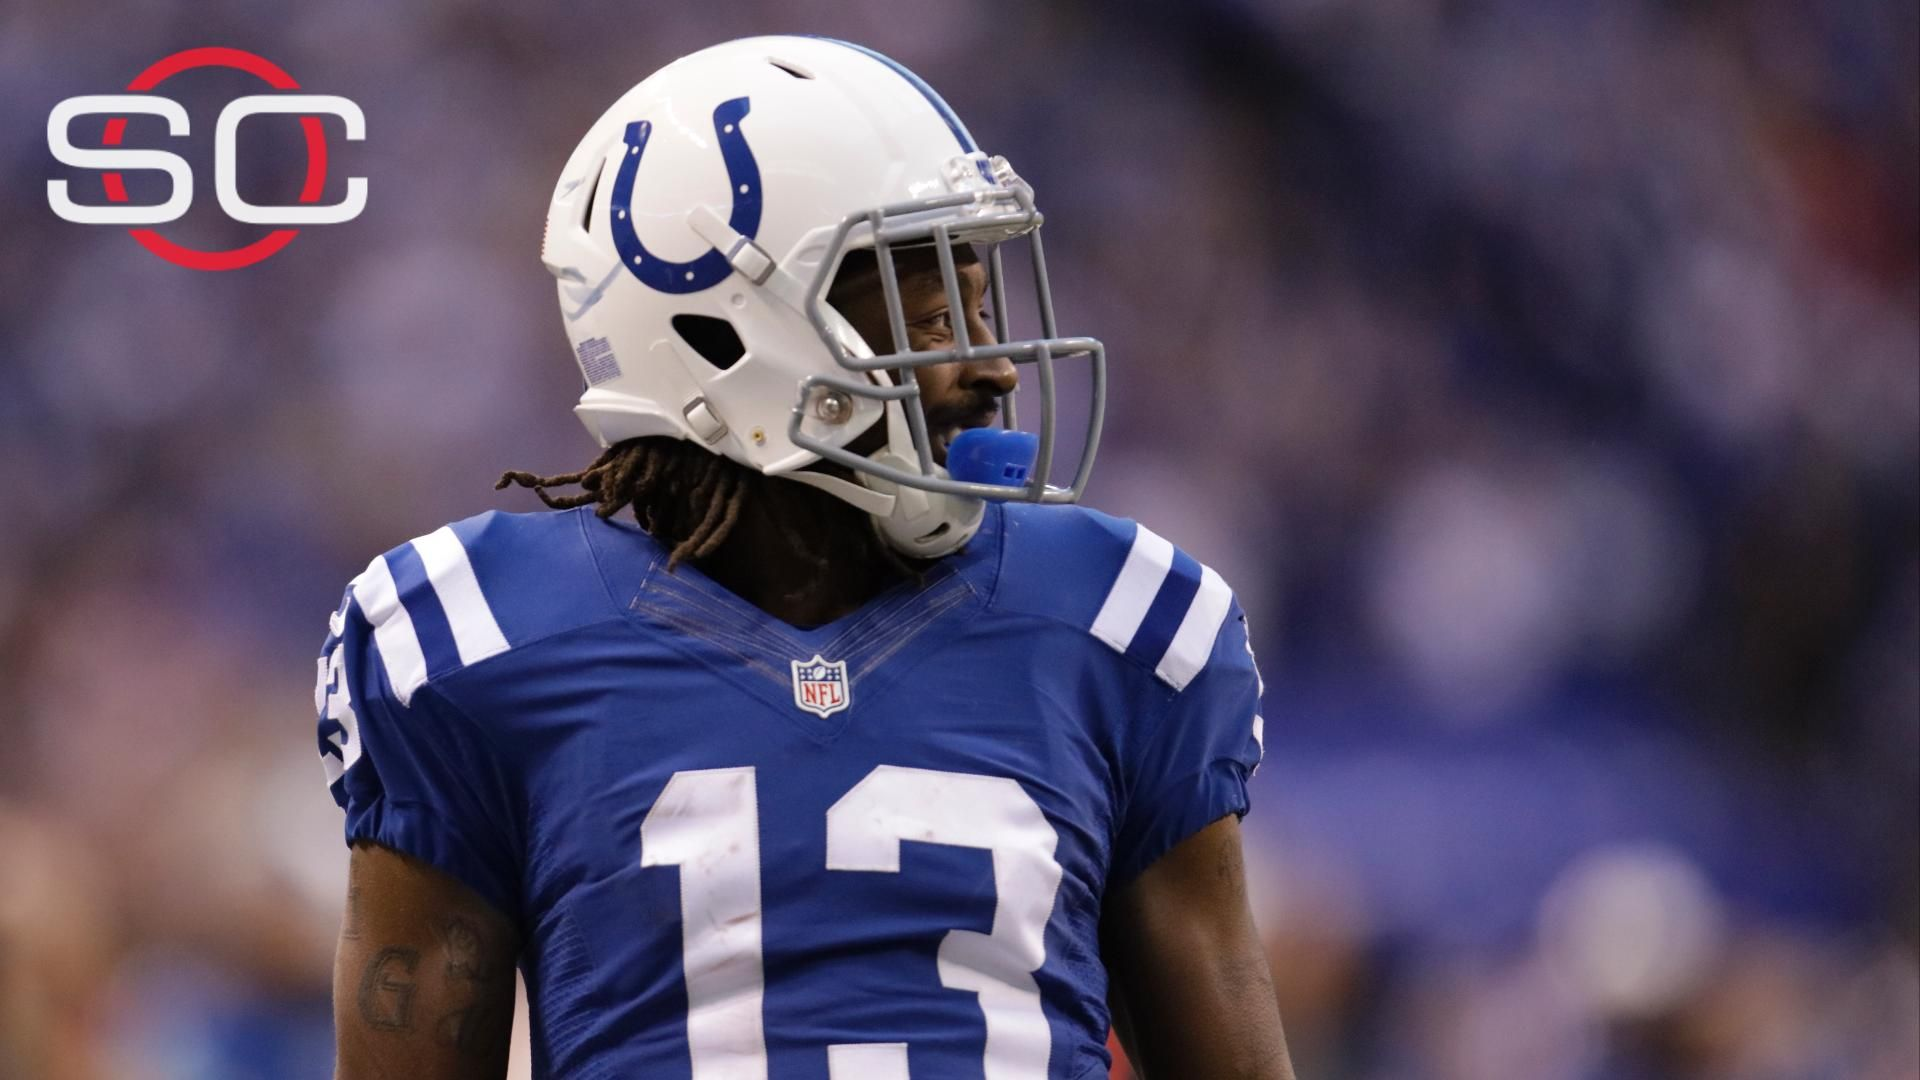 Colts' short passing game irking WR Hilton